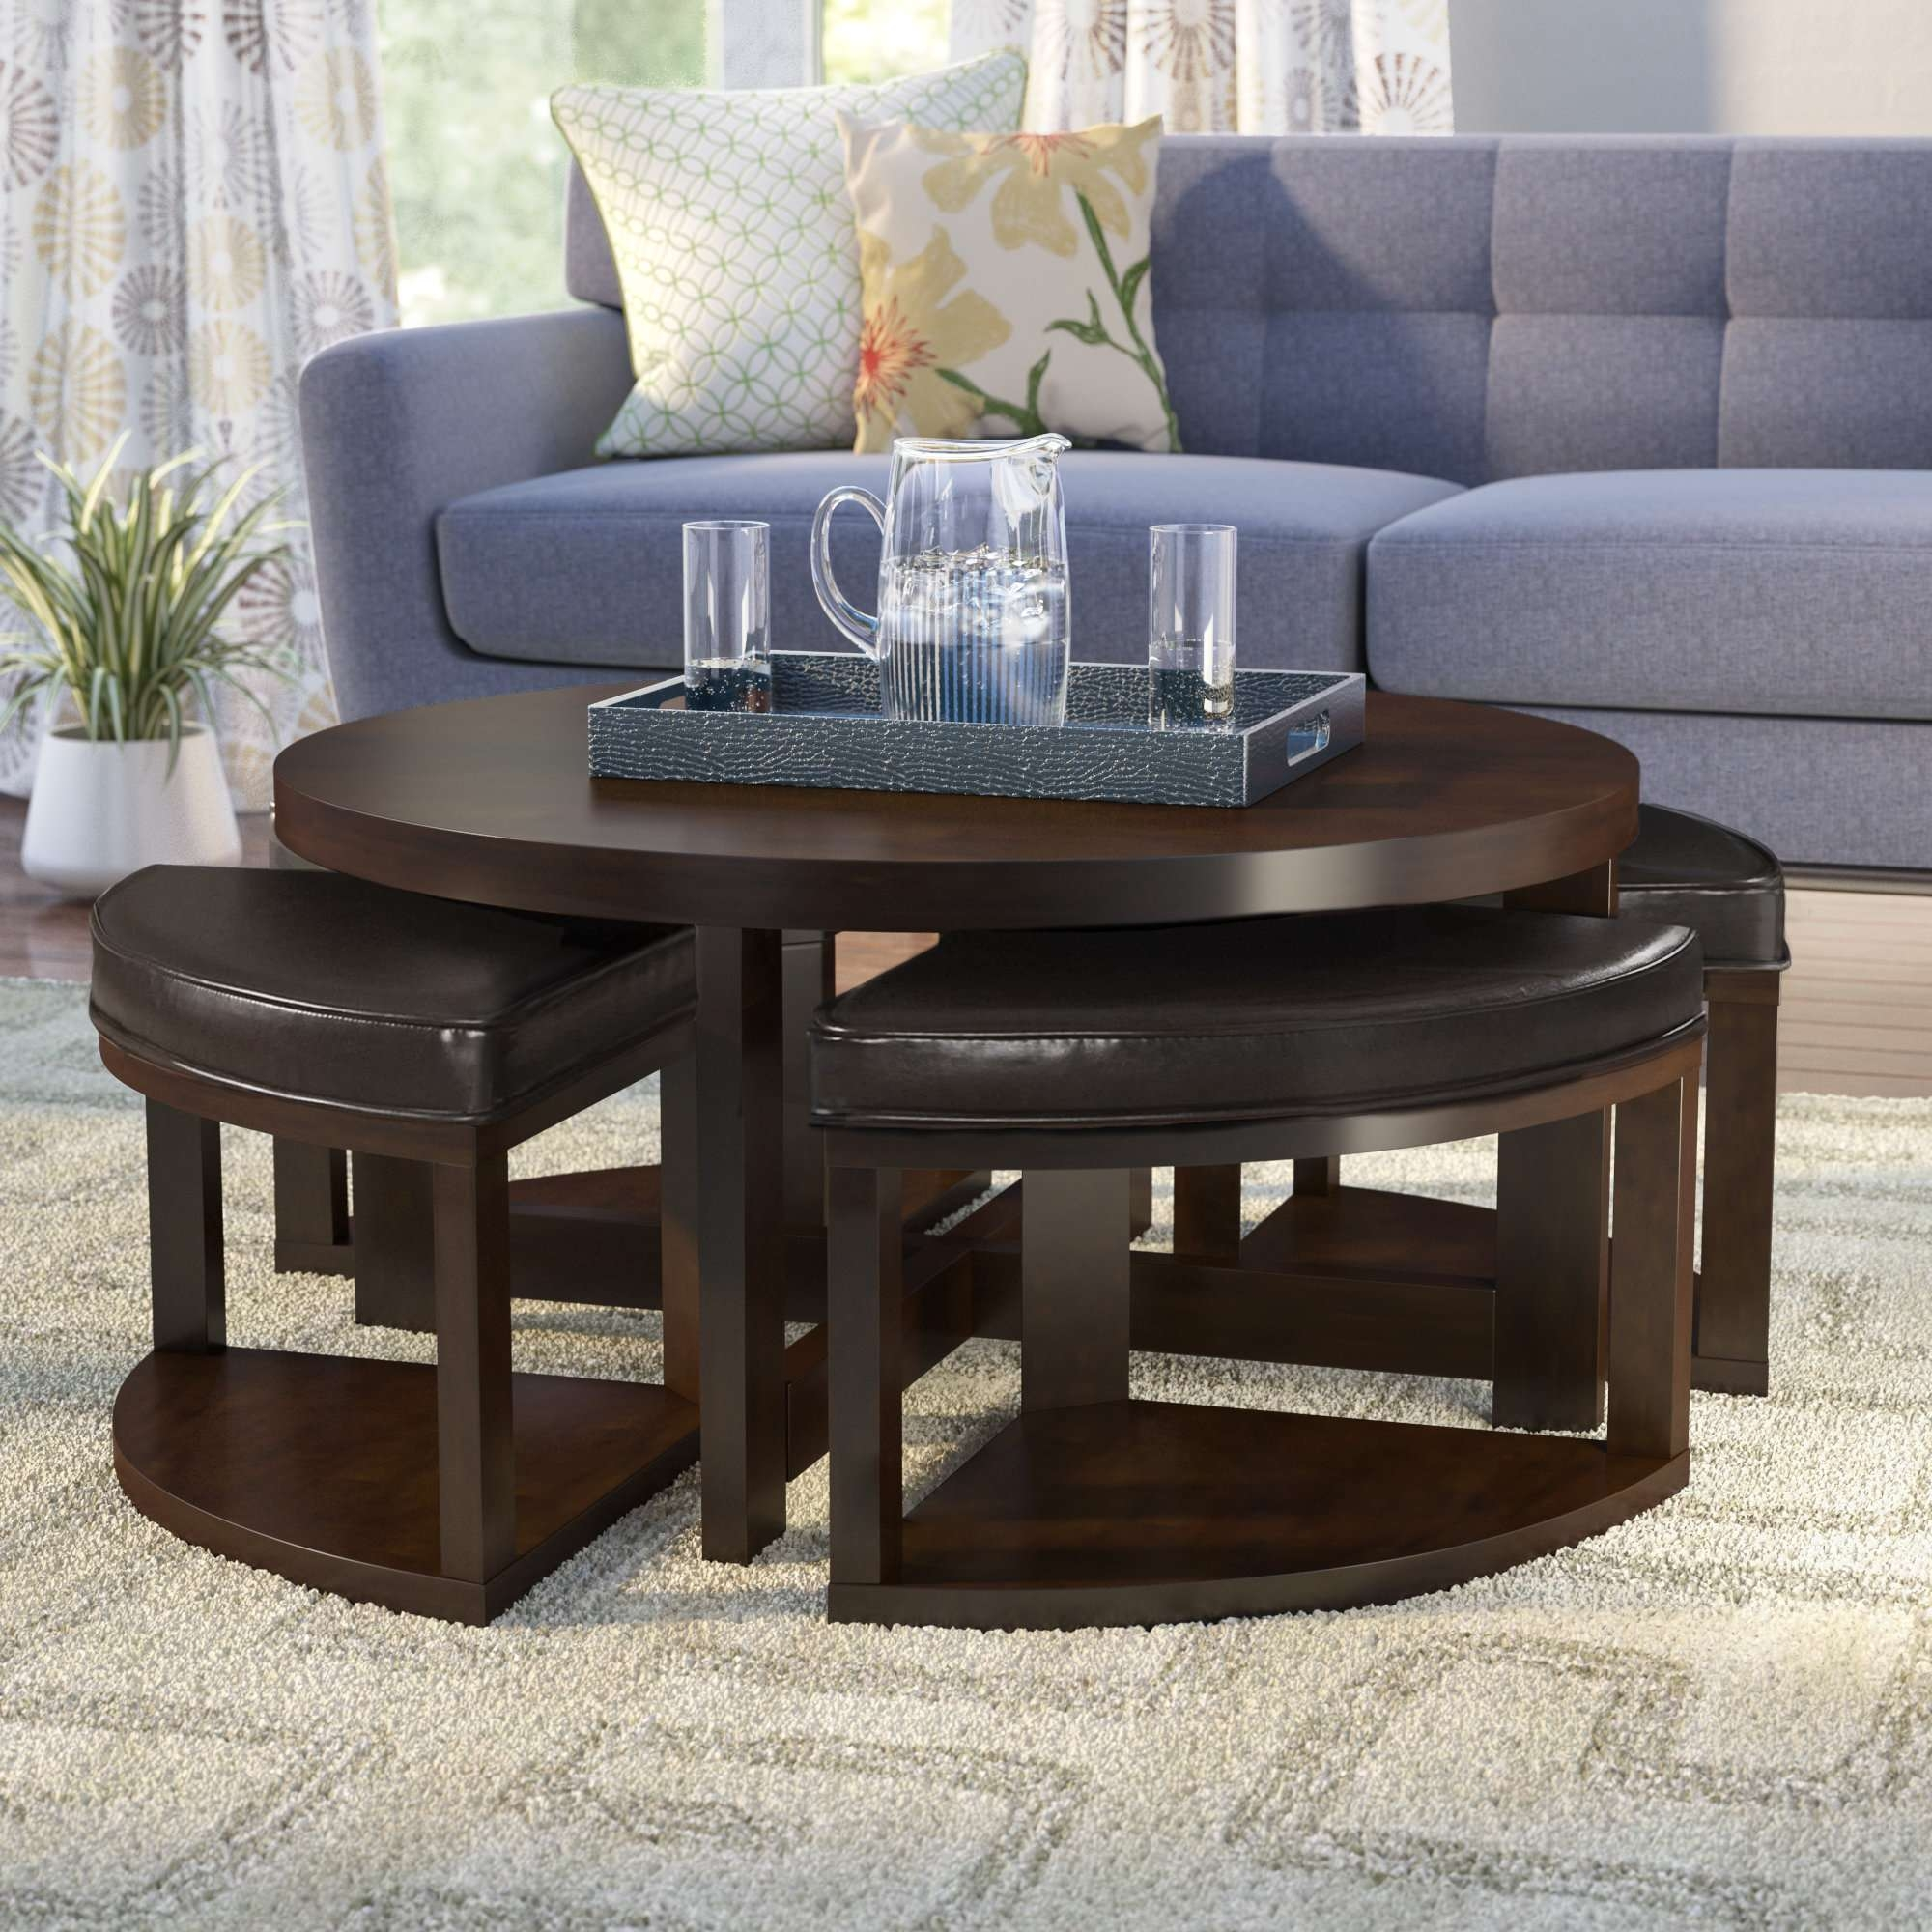 20 best collection of coffee tables with nesting stools. Black Bedroom Furniture Sets. Home Design Ideas